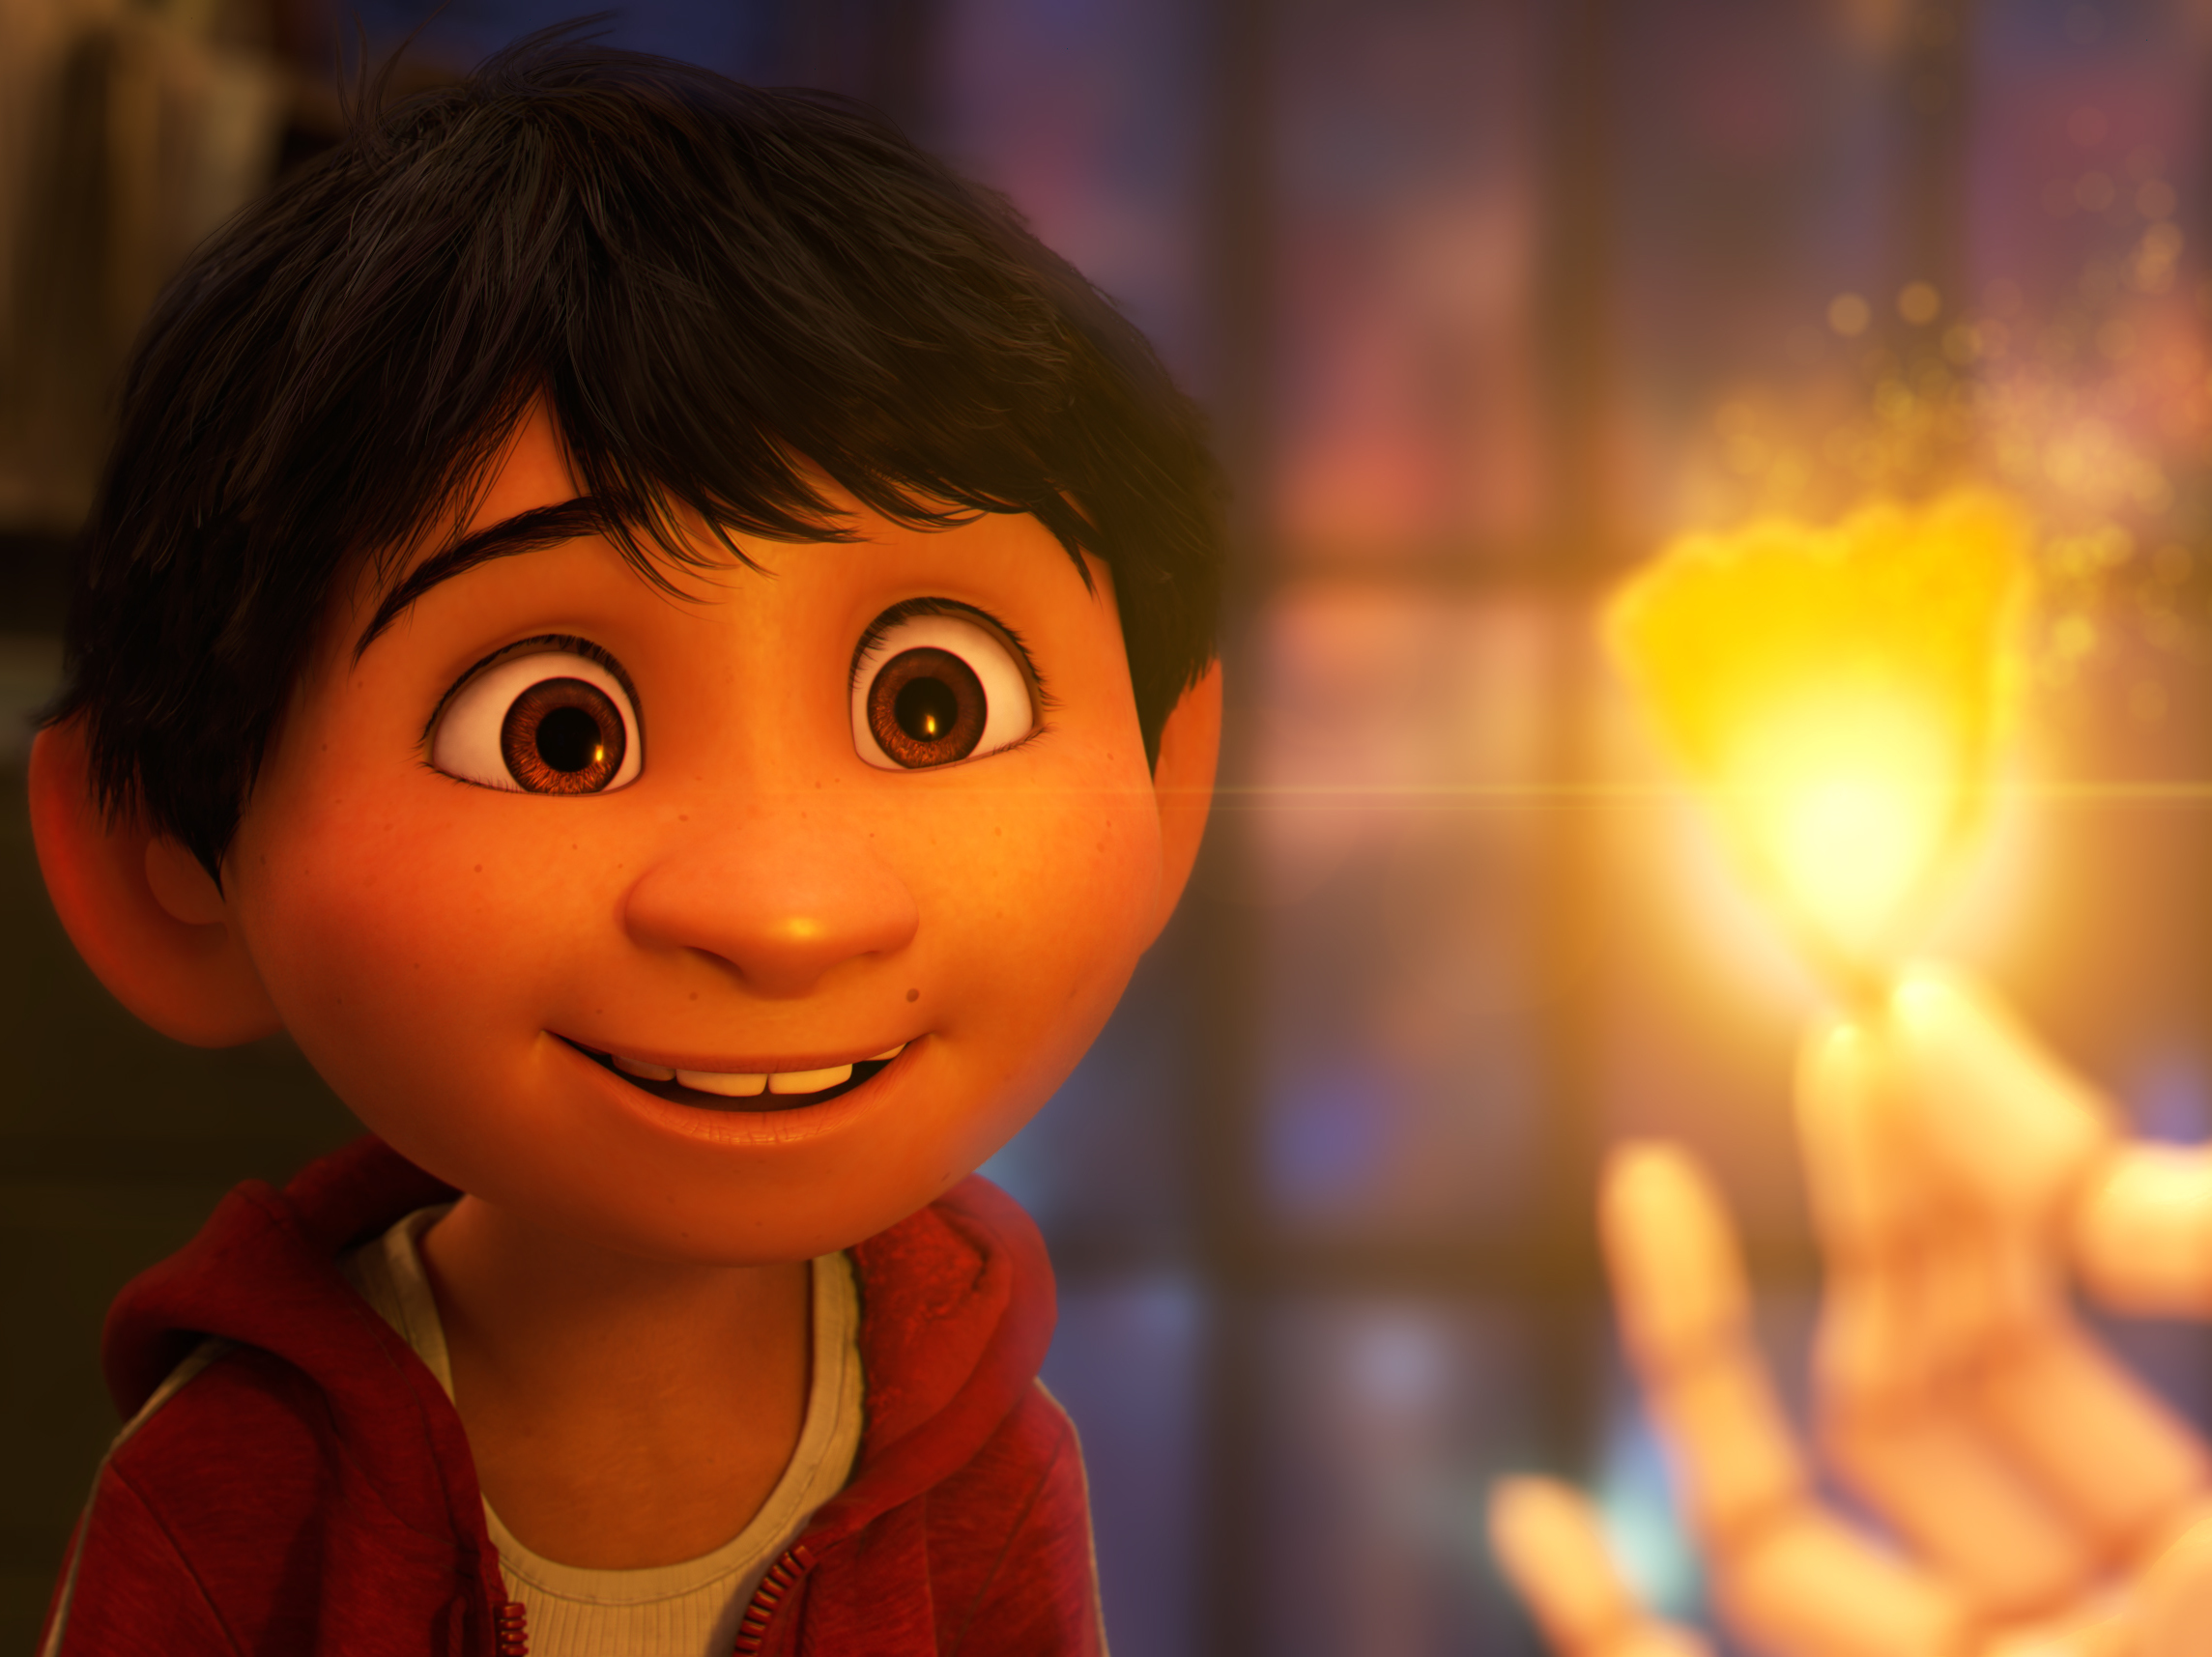 Pixar's Coco celebrates Mexico in times of Trump